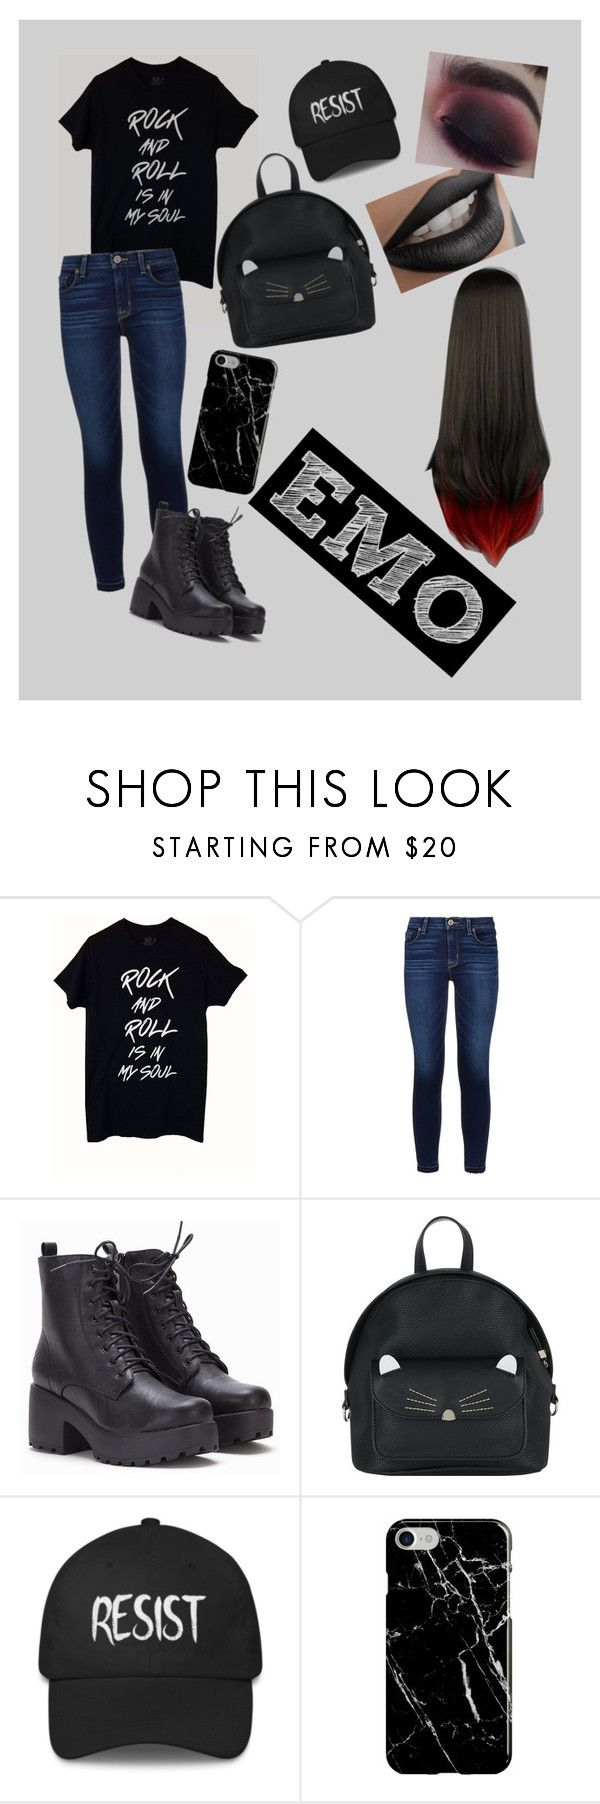 """""""EMO"""" by dtq101 ❤ liked on Polyvore featuring CENA, Hudson, Accessorize and Recover"""